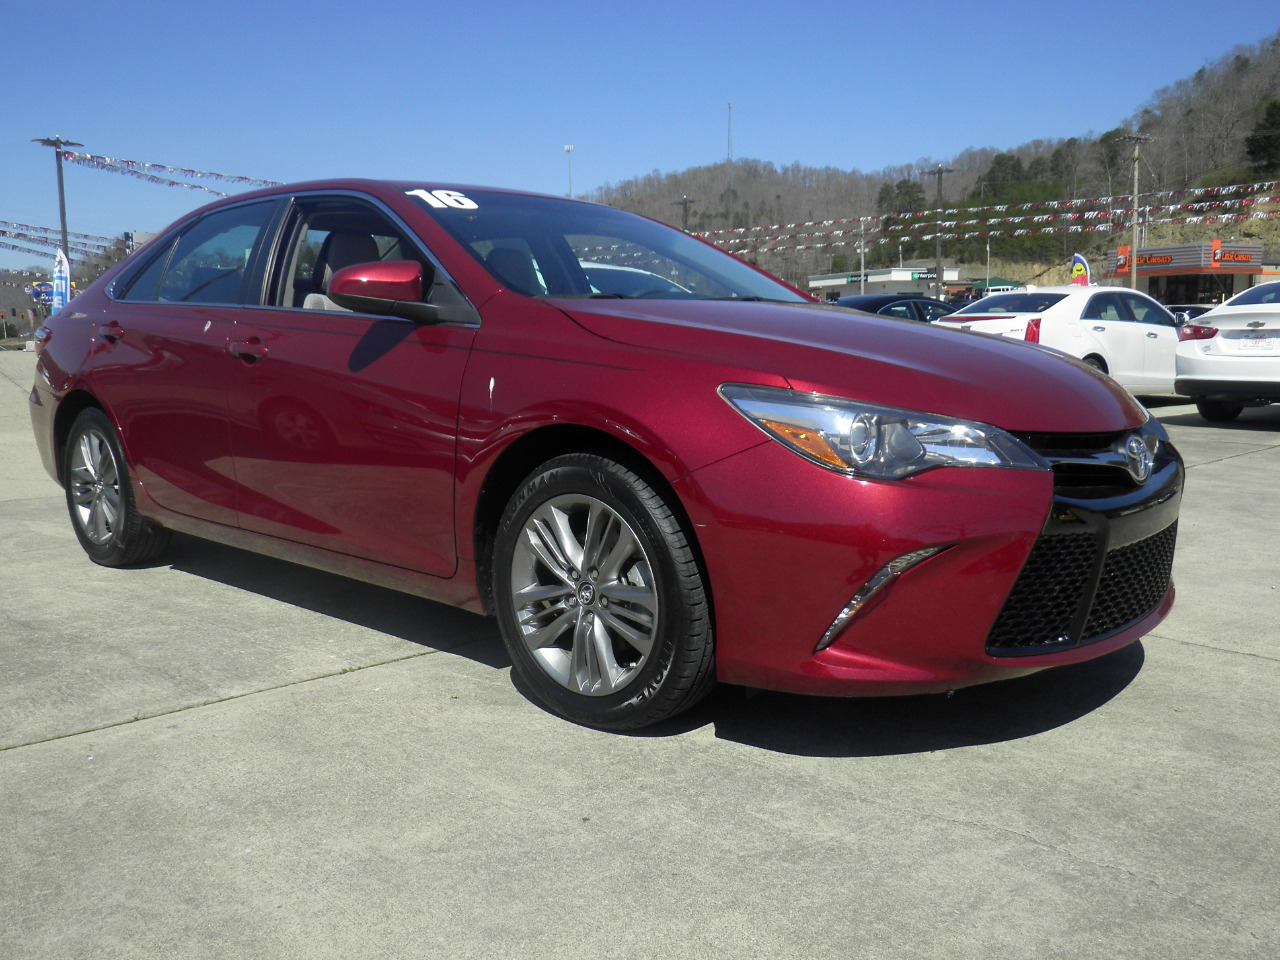 2016 Toyota Camry 4dr Sdn I4 Auto XLE (Natl)